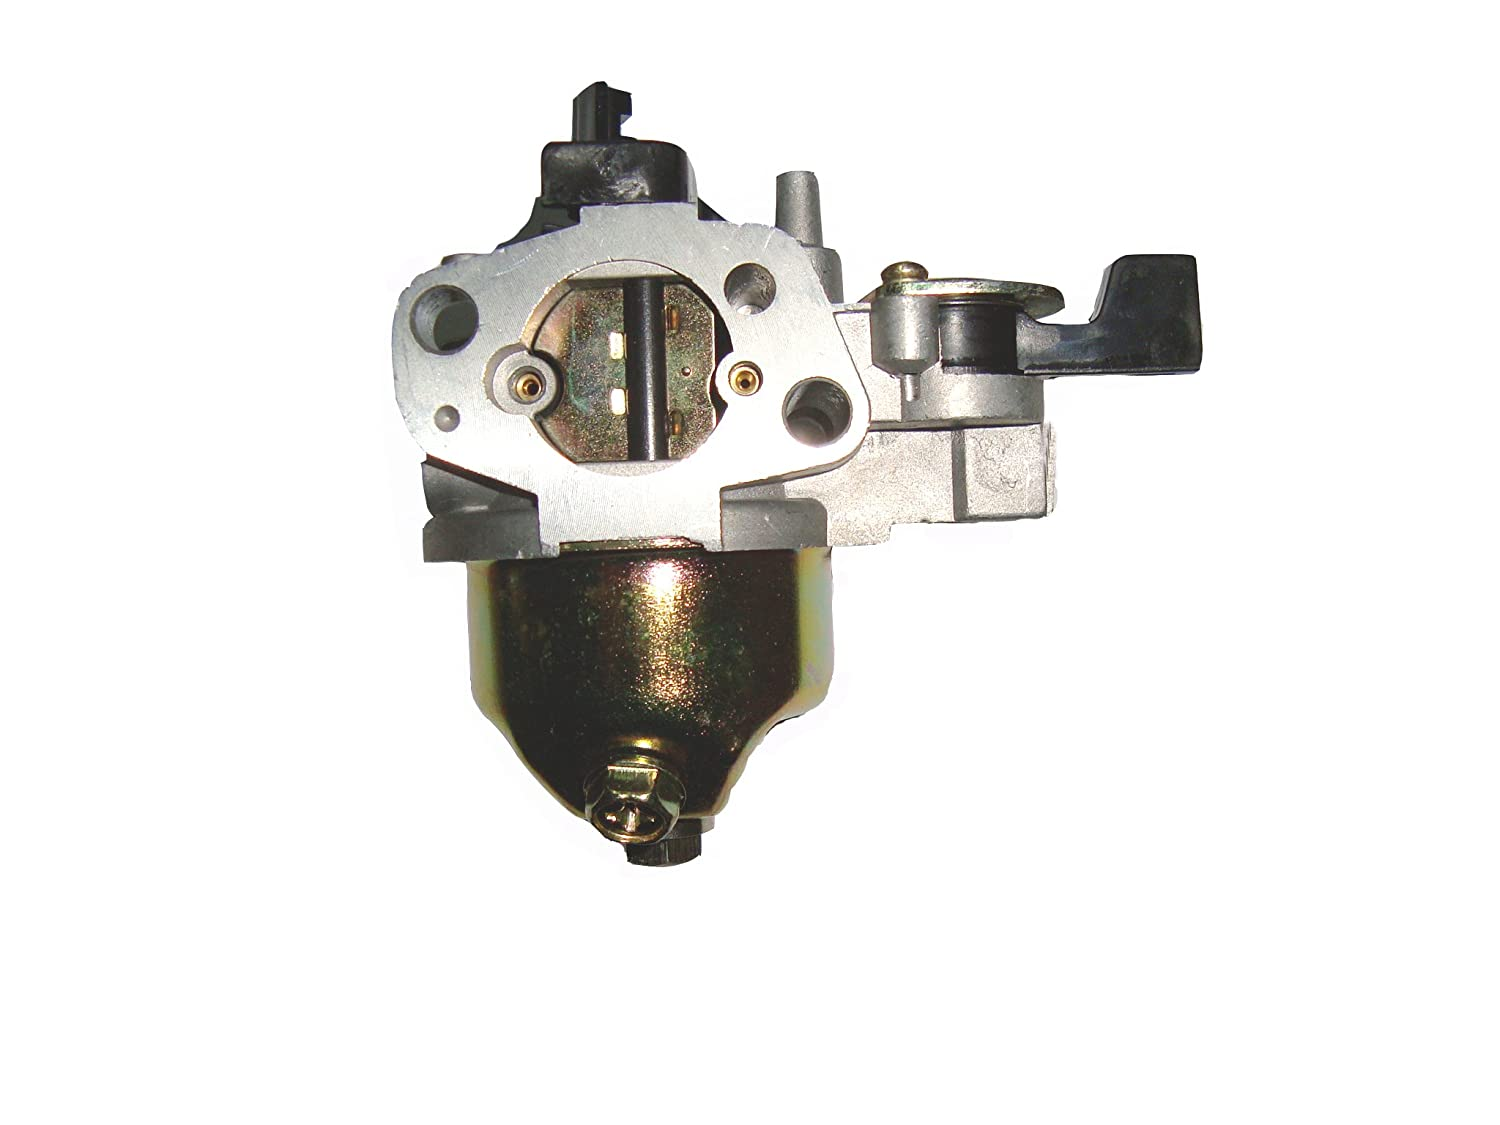 Honda Gx200 65hp Engine Carburetor Carb Replaces Gcv160 N7a1 Jpn Small Cylinder Diagram And Parts 16100 Zl0 W51 Lawn Mower Gas Tanks Garden Outdoor